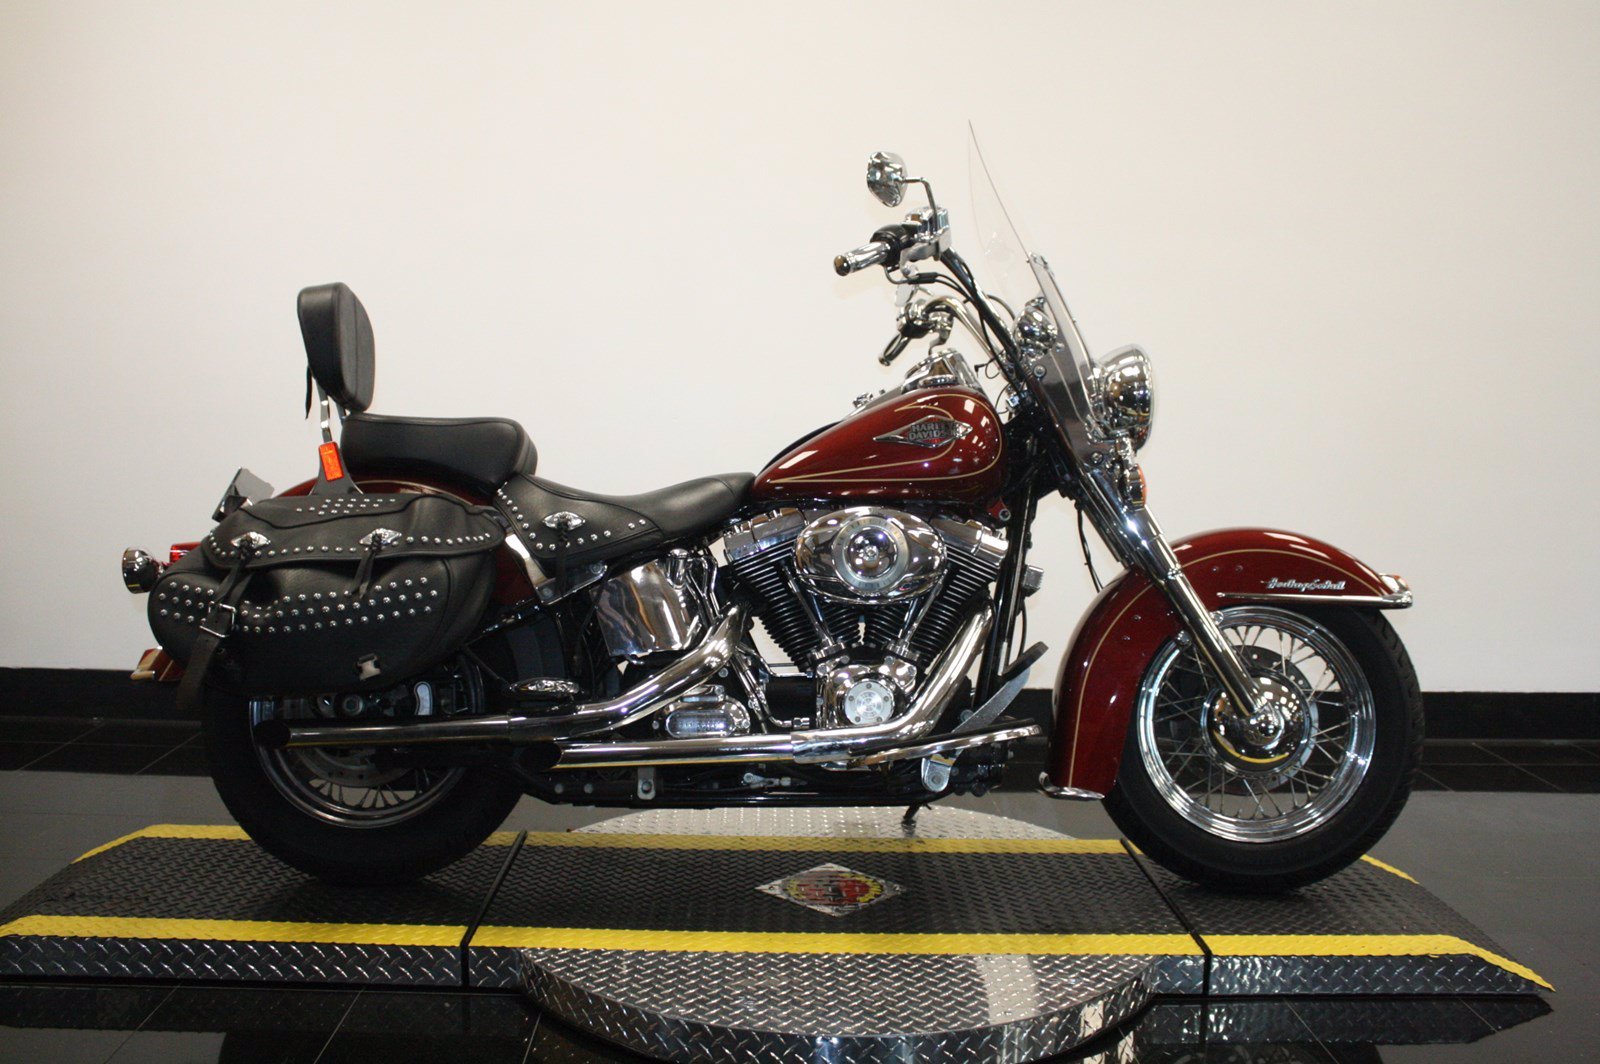 Pre-Owned 2009 Harley-Davidson Softail Heritage Classic FLSTC